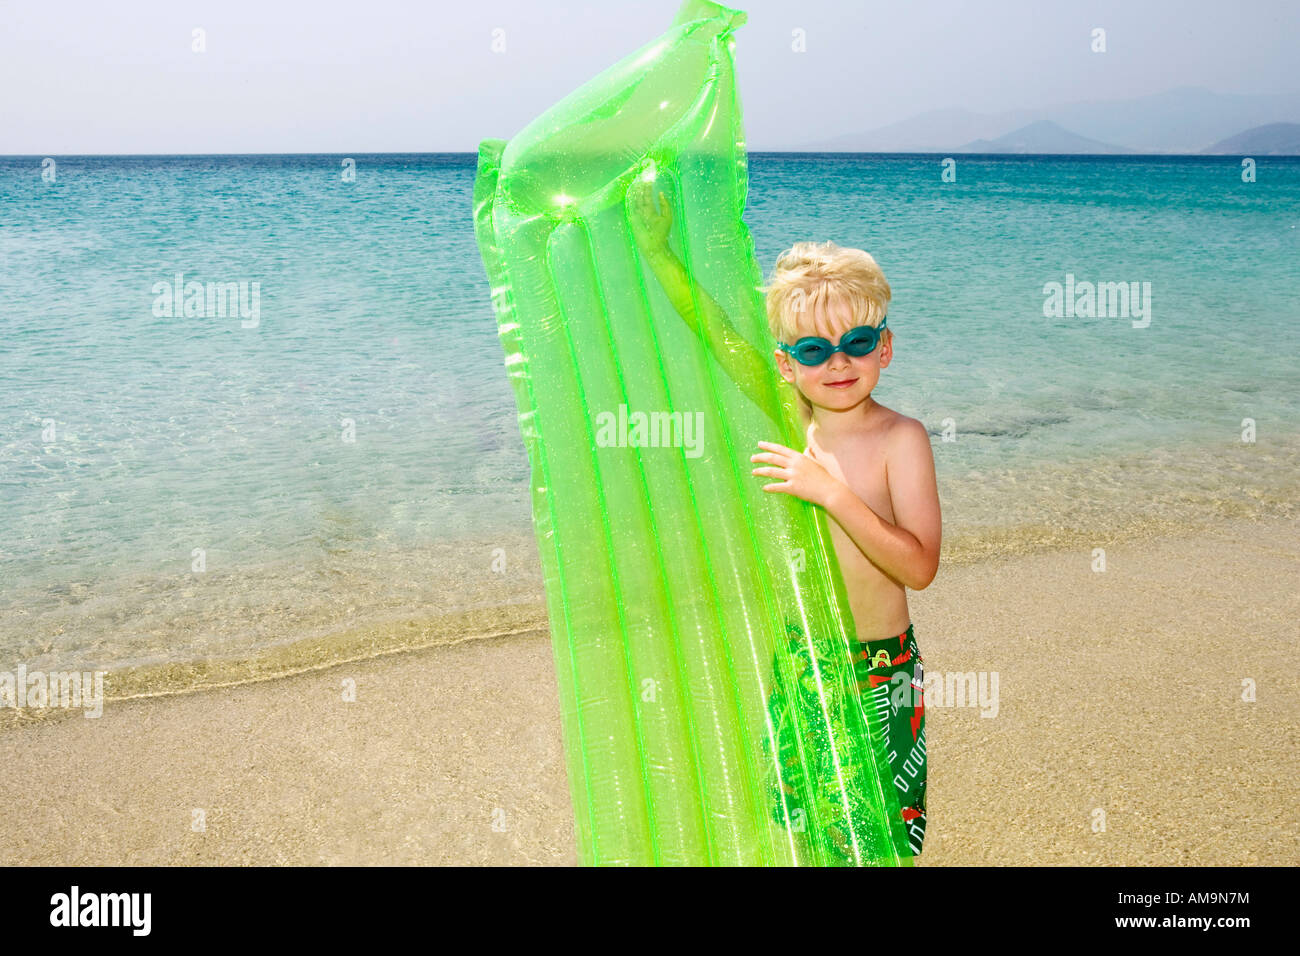 Young boy at the beach with an inflatable raft. Stock Photo